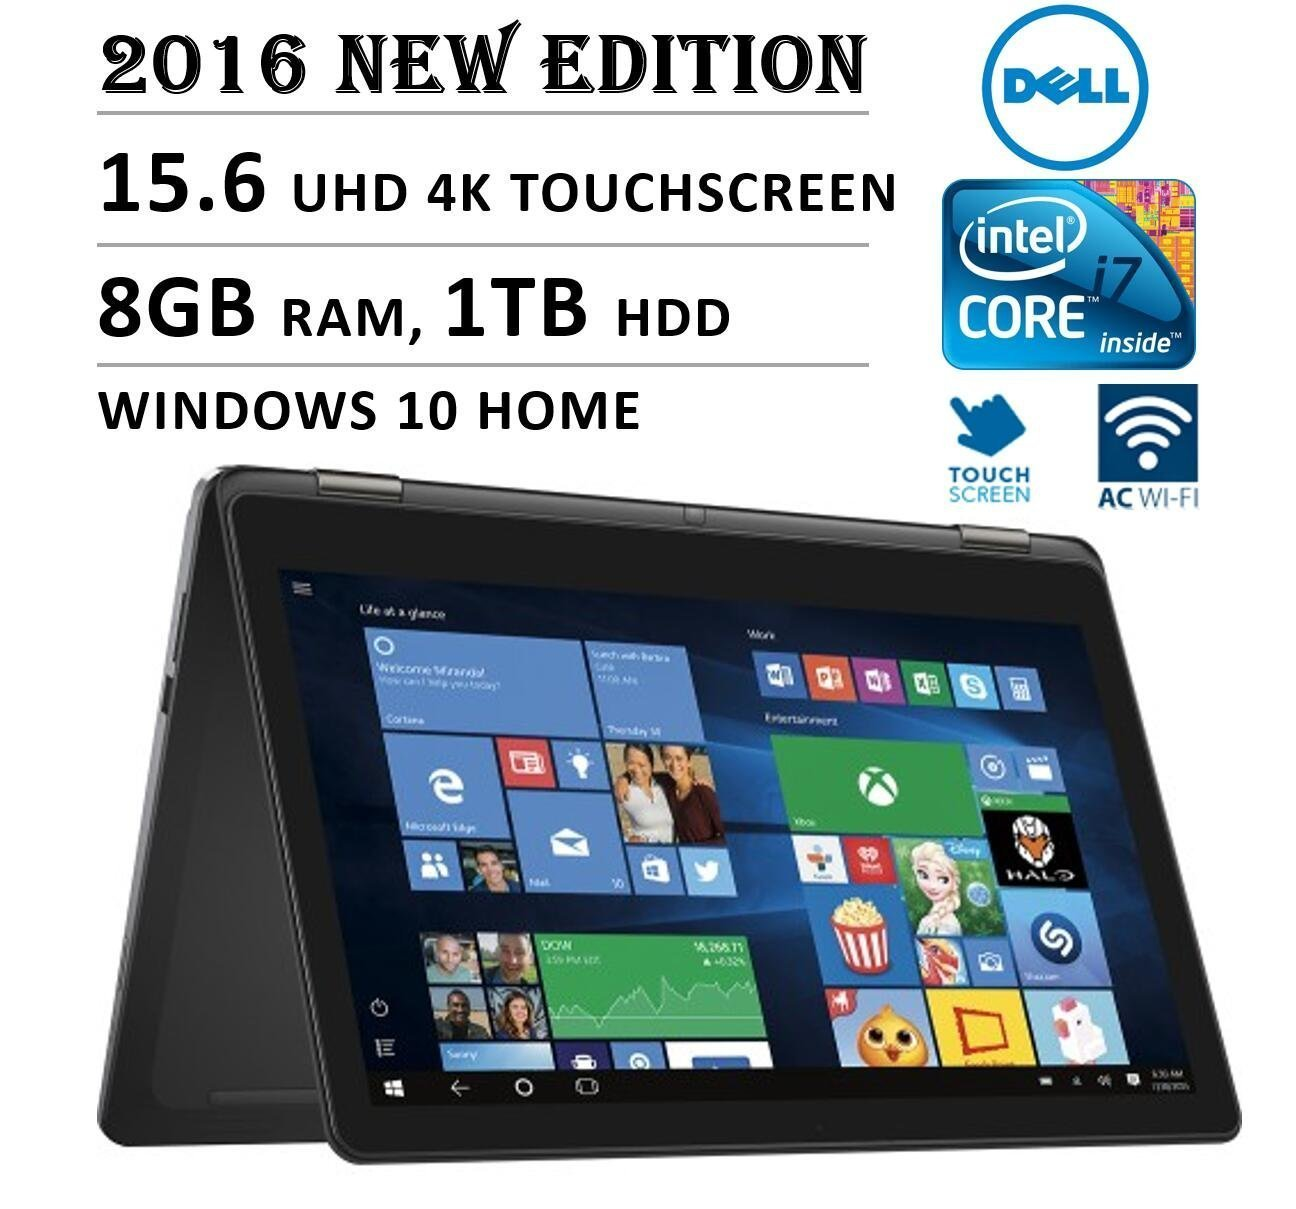 "2016 Newest DELL 7000 Series Inspiron 2-in-1 15.6"" 4K 3840 x 2160 UHD Touch-screen Flip Convertible Laptop, Intel Core i7 6500U up to 3.1 GHz, 8GB RAM, 1TB HDD, 802.11AC, Bluetooth, HDMI, Windows 10"